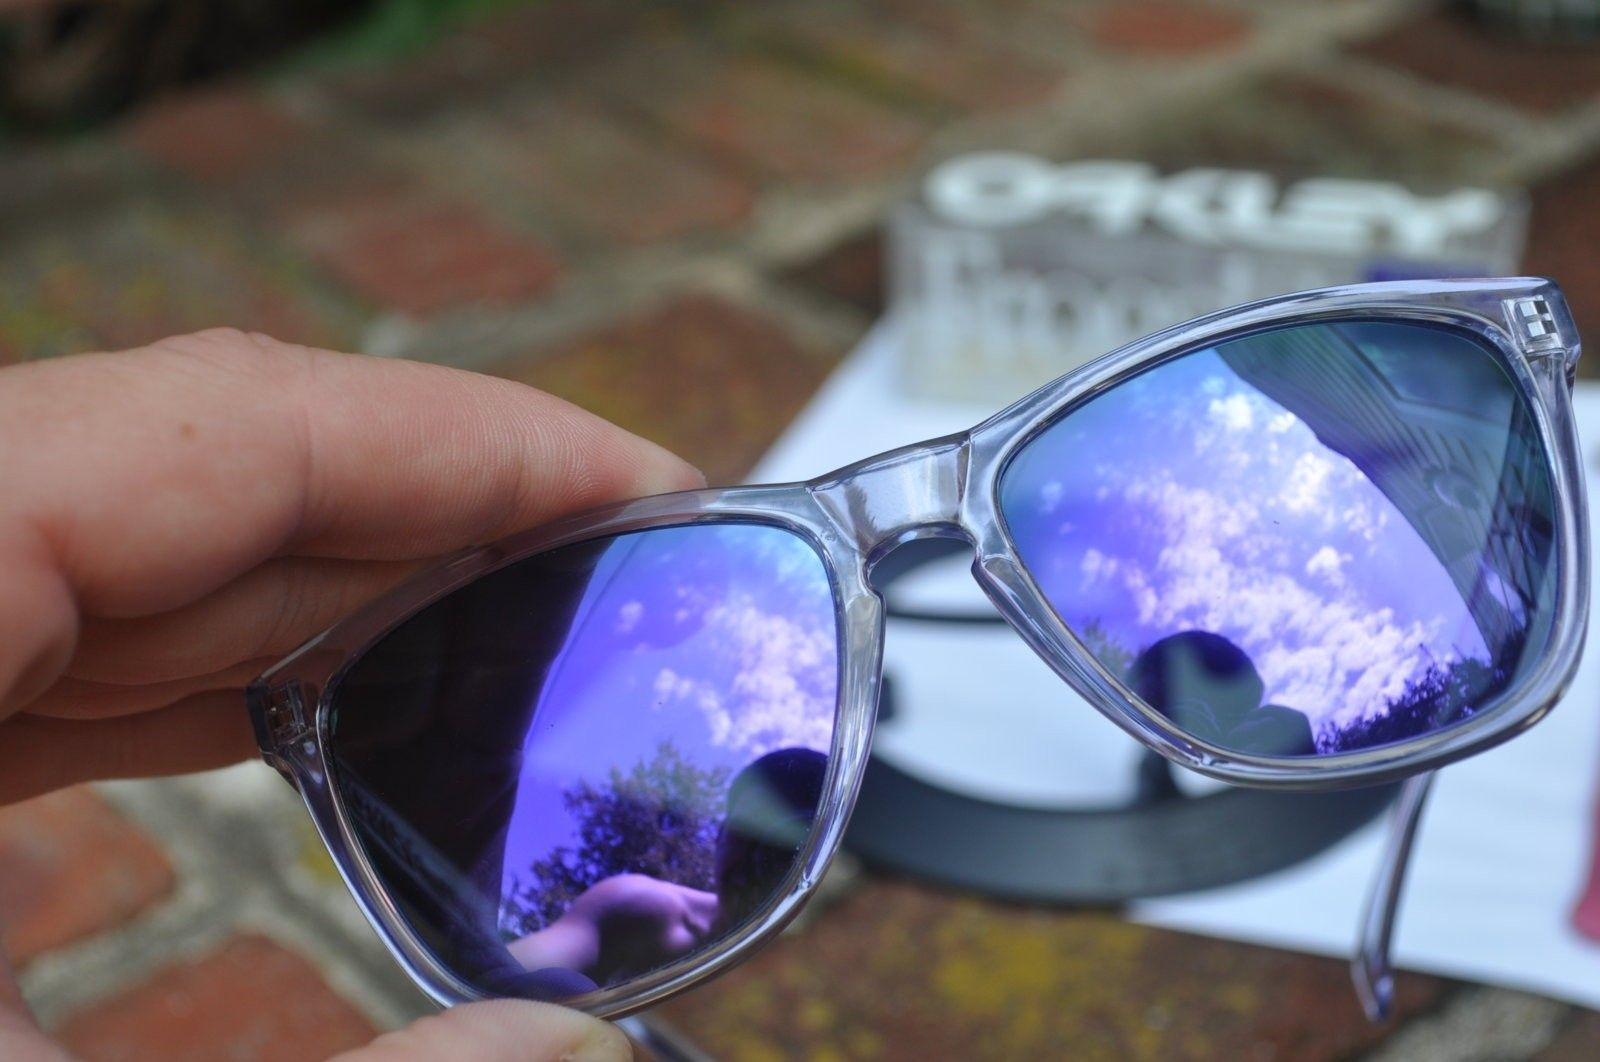 New Koston Woodgrain, Vintage Clear/ Violet - DSC_0070.JPG